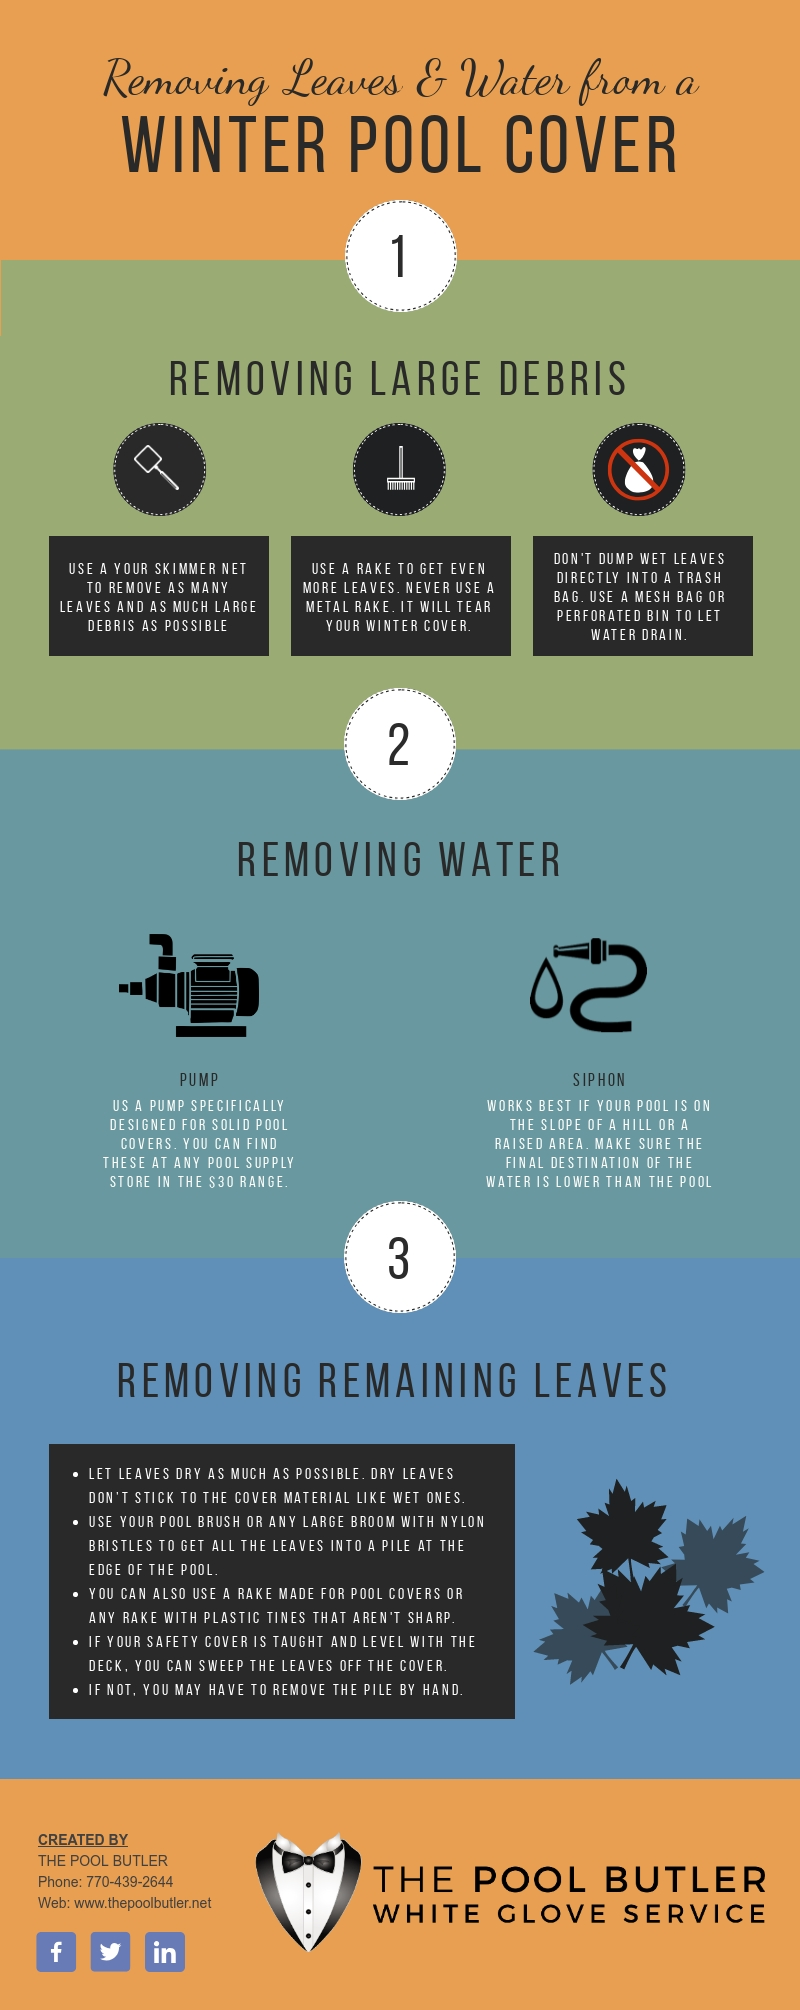 Removing Leaves and Water from a Winter Pool Cover [infographic]